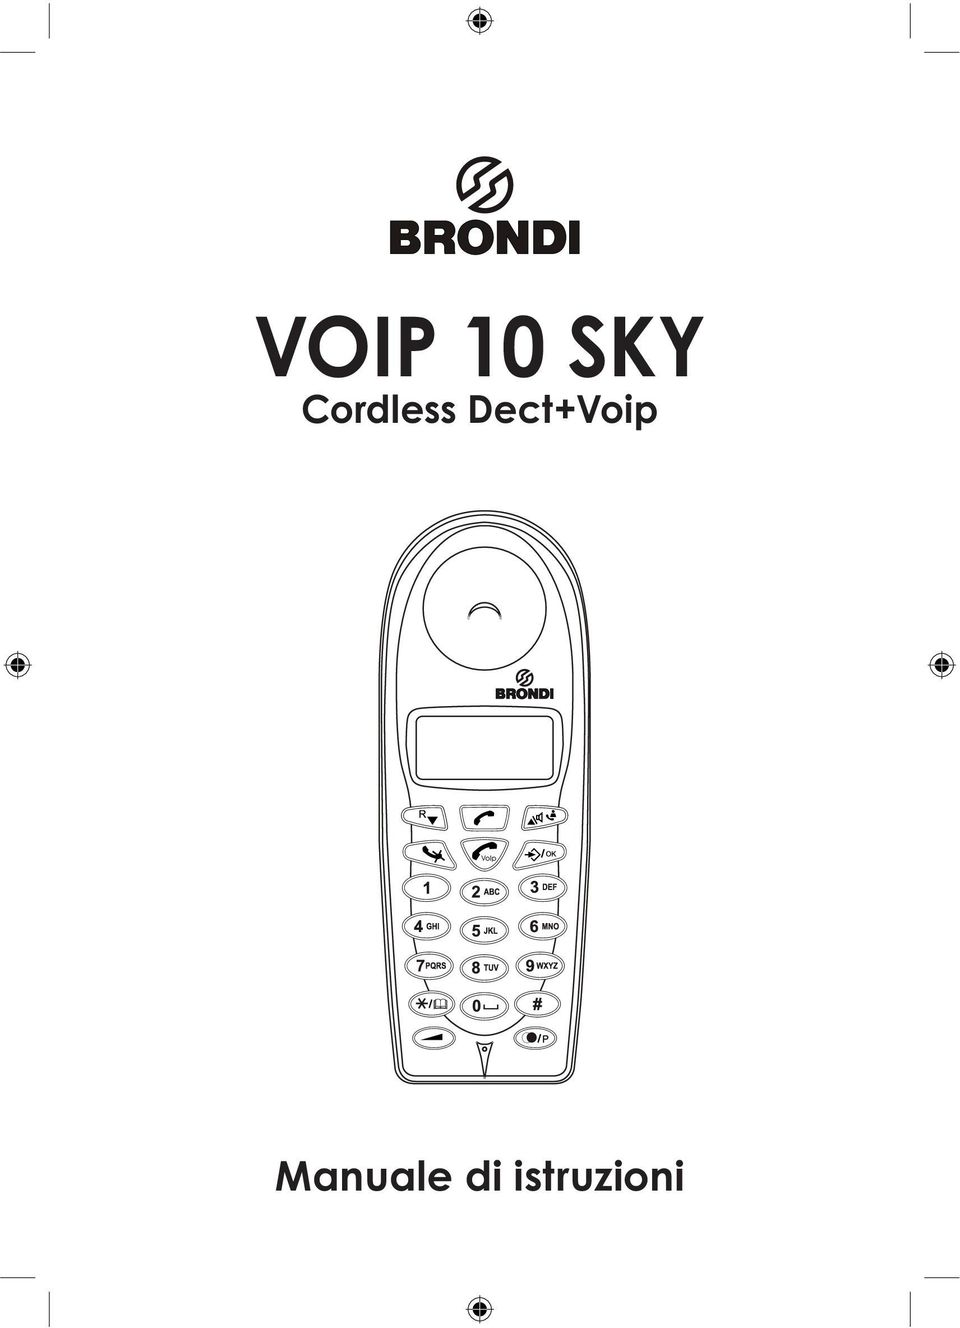 Dect+Voip